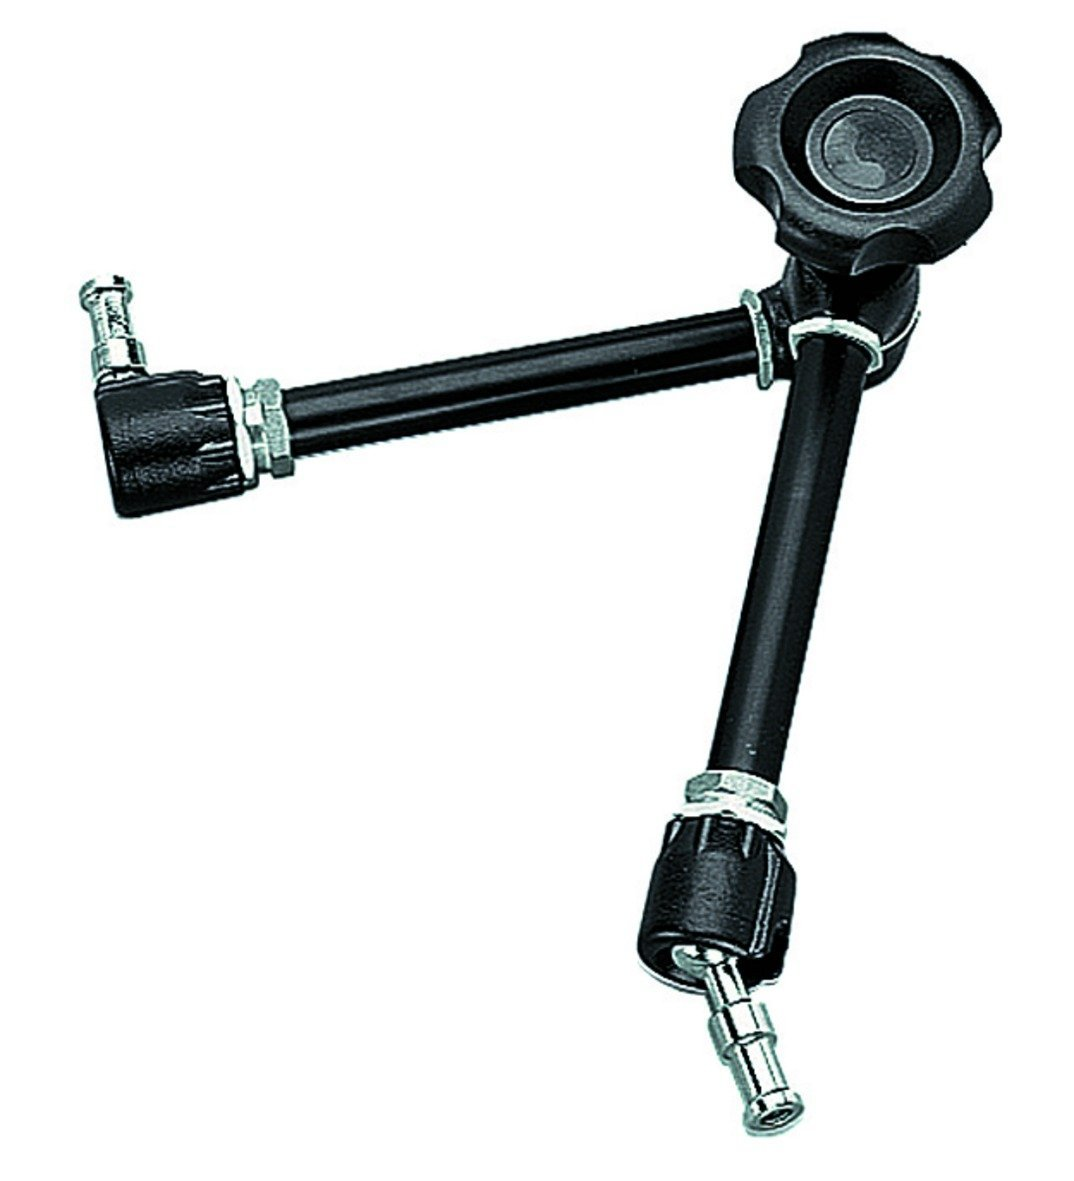 Manfrotto Variable Friction Magic Arms